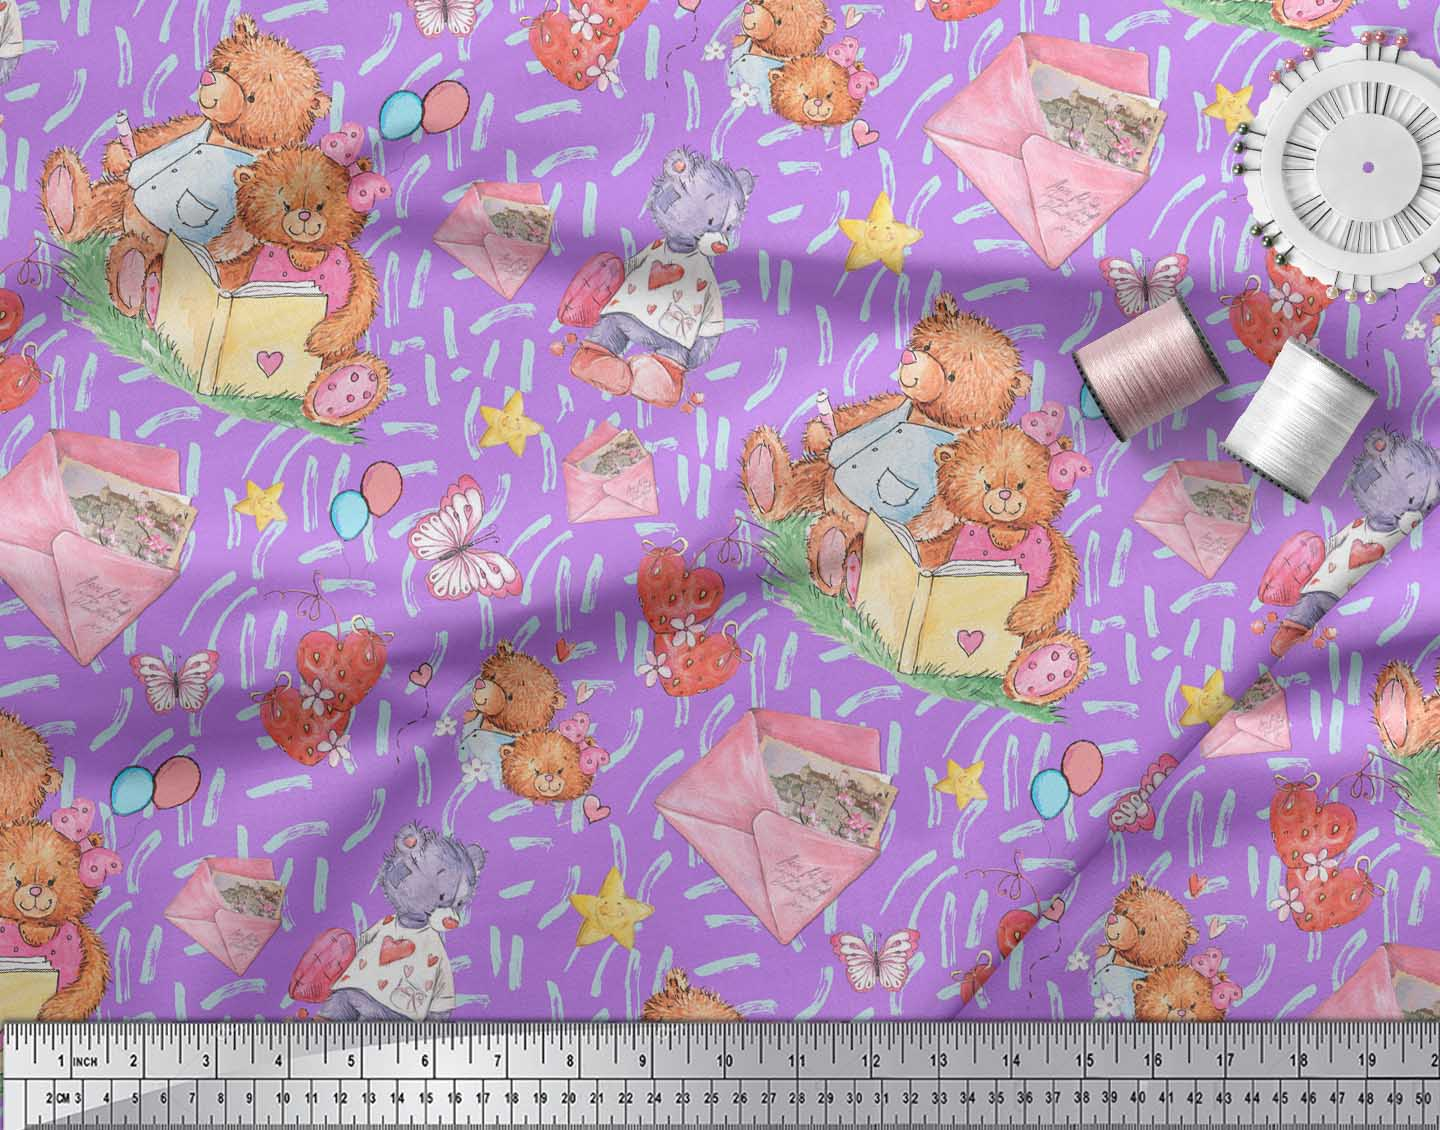 Soimoi-Purple-Cotton-Poplin-Fabric-Teddy-Bear-amp-Hearts-Kids-Print-CR5 thumbnail 4